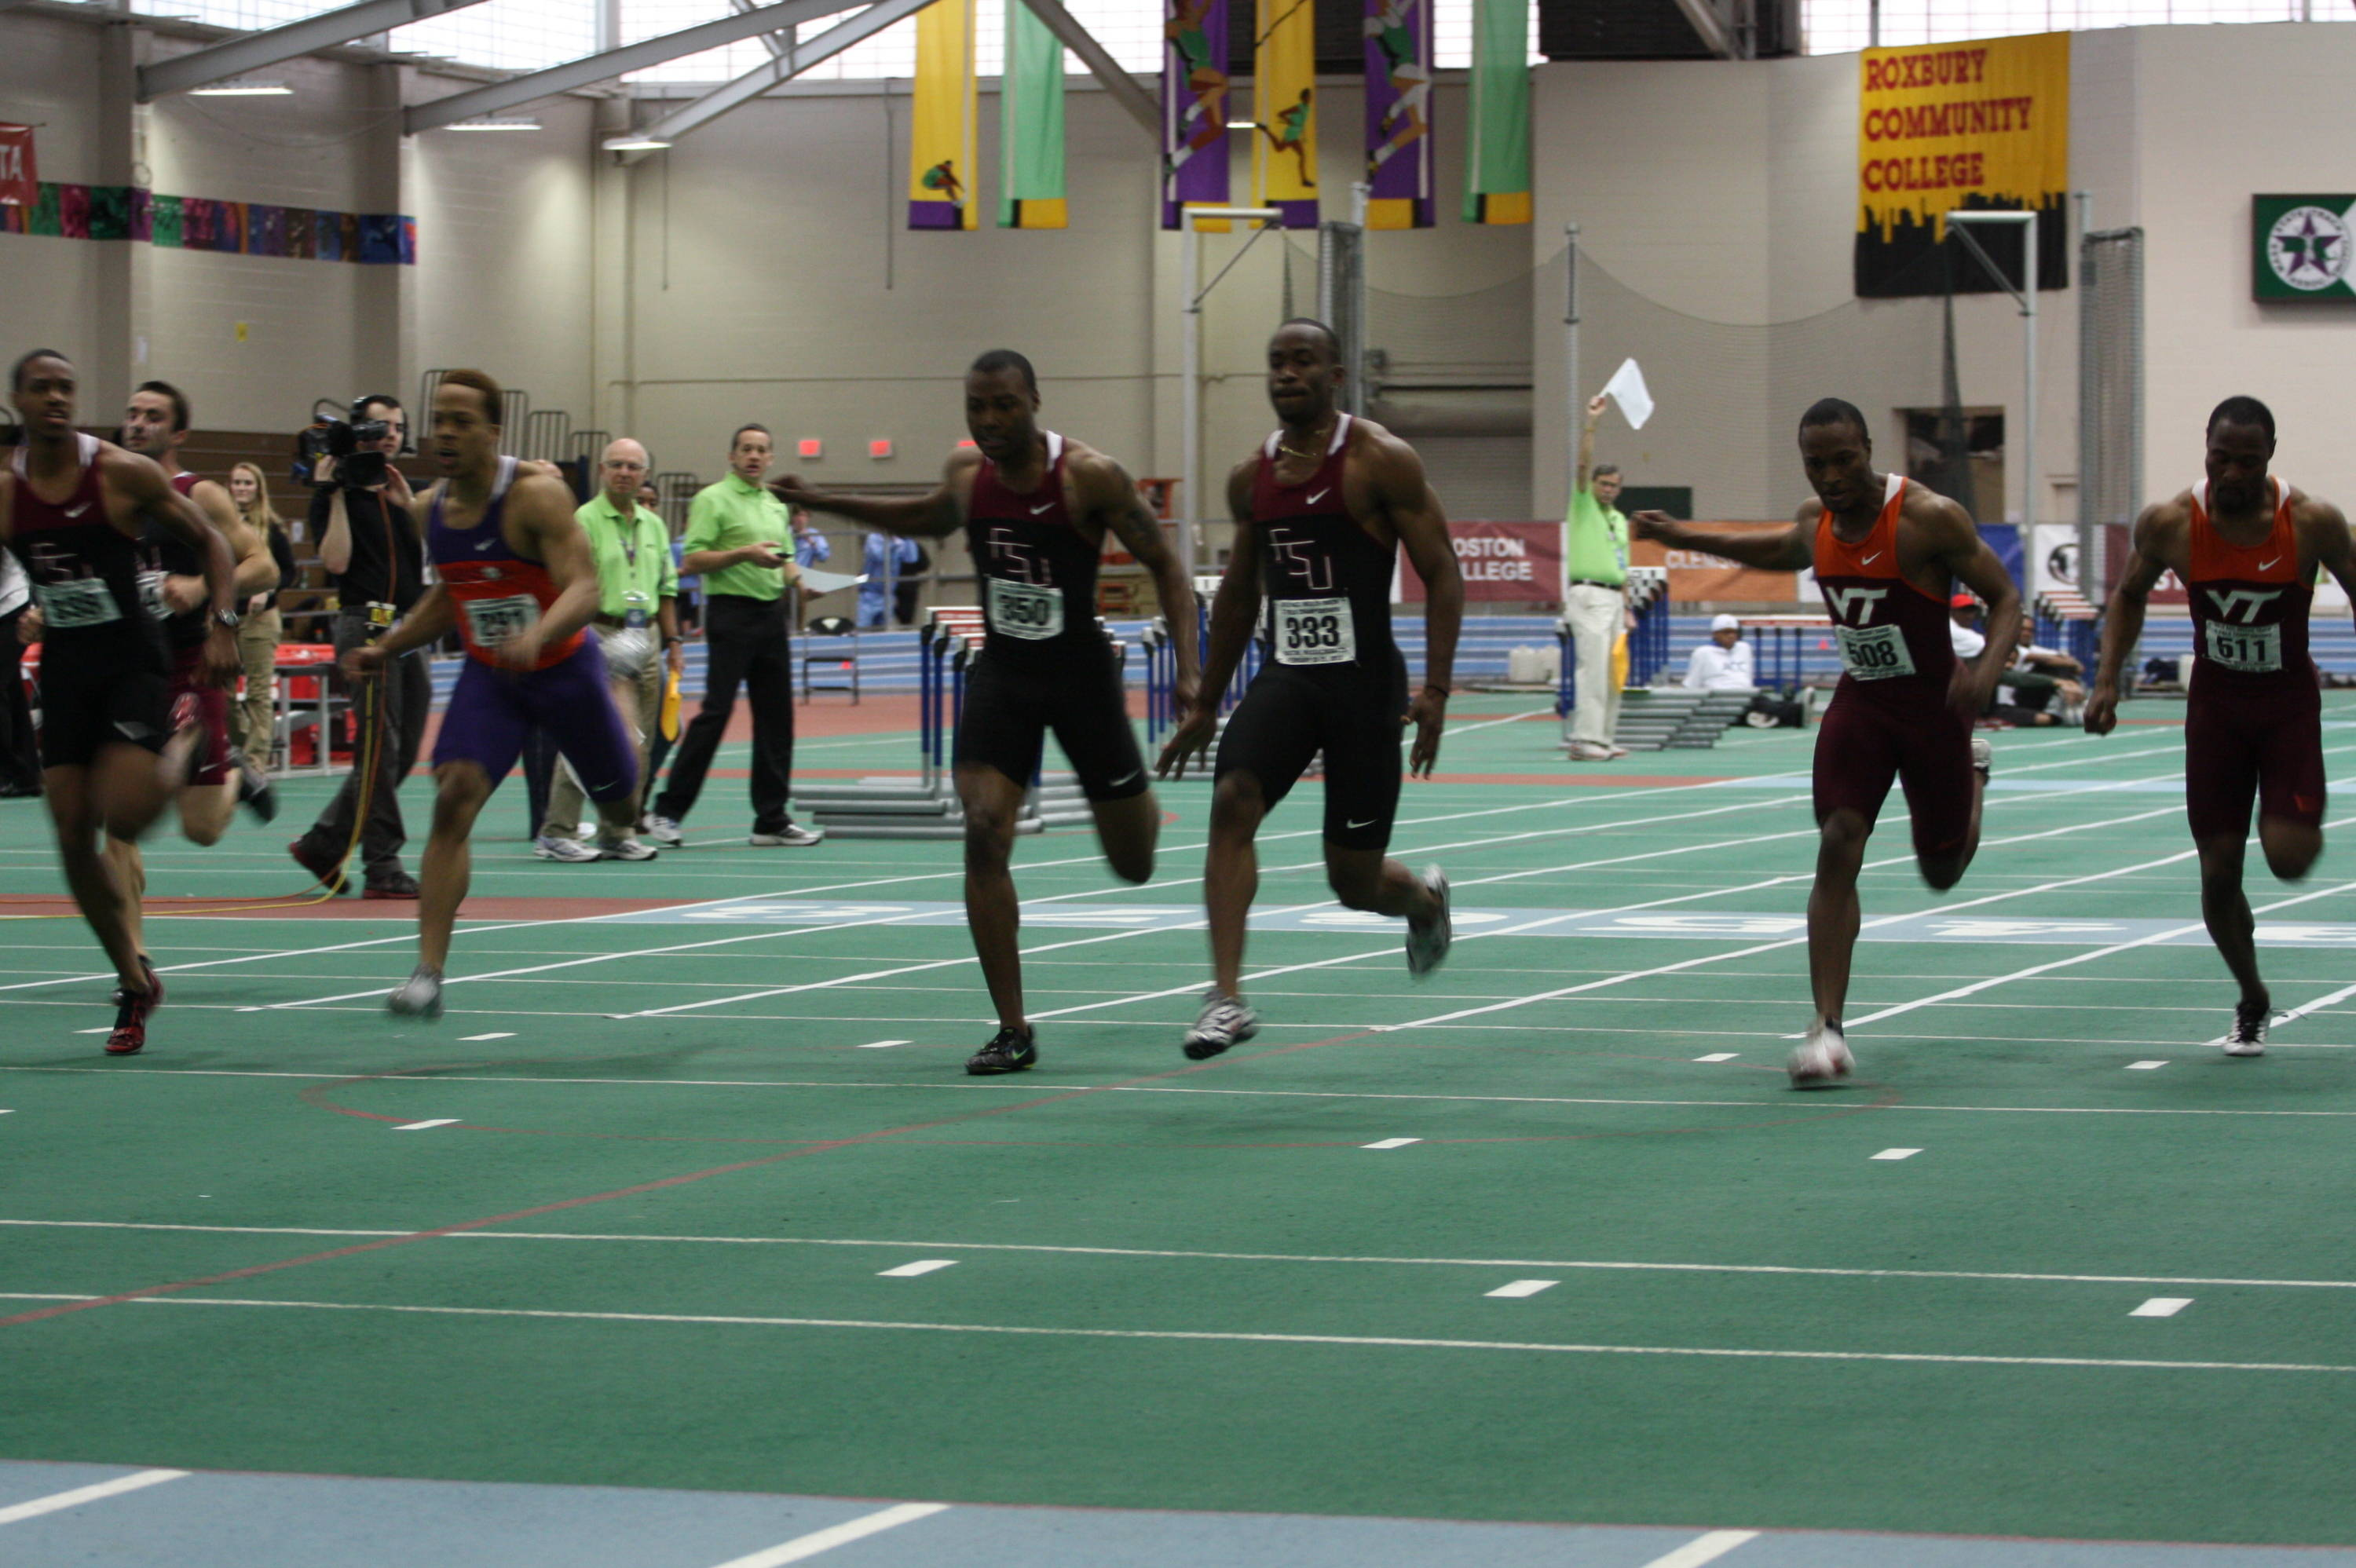 Kemar Hyman (333) won the 60m title, while Horatio Williams (350) was fourth and Maurice Mitchell (far left) finished second.